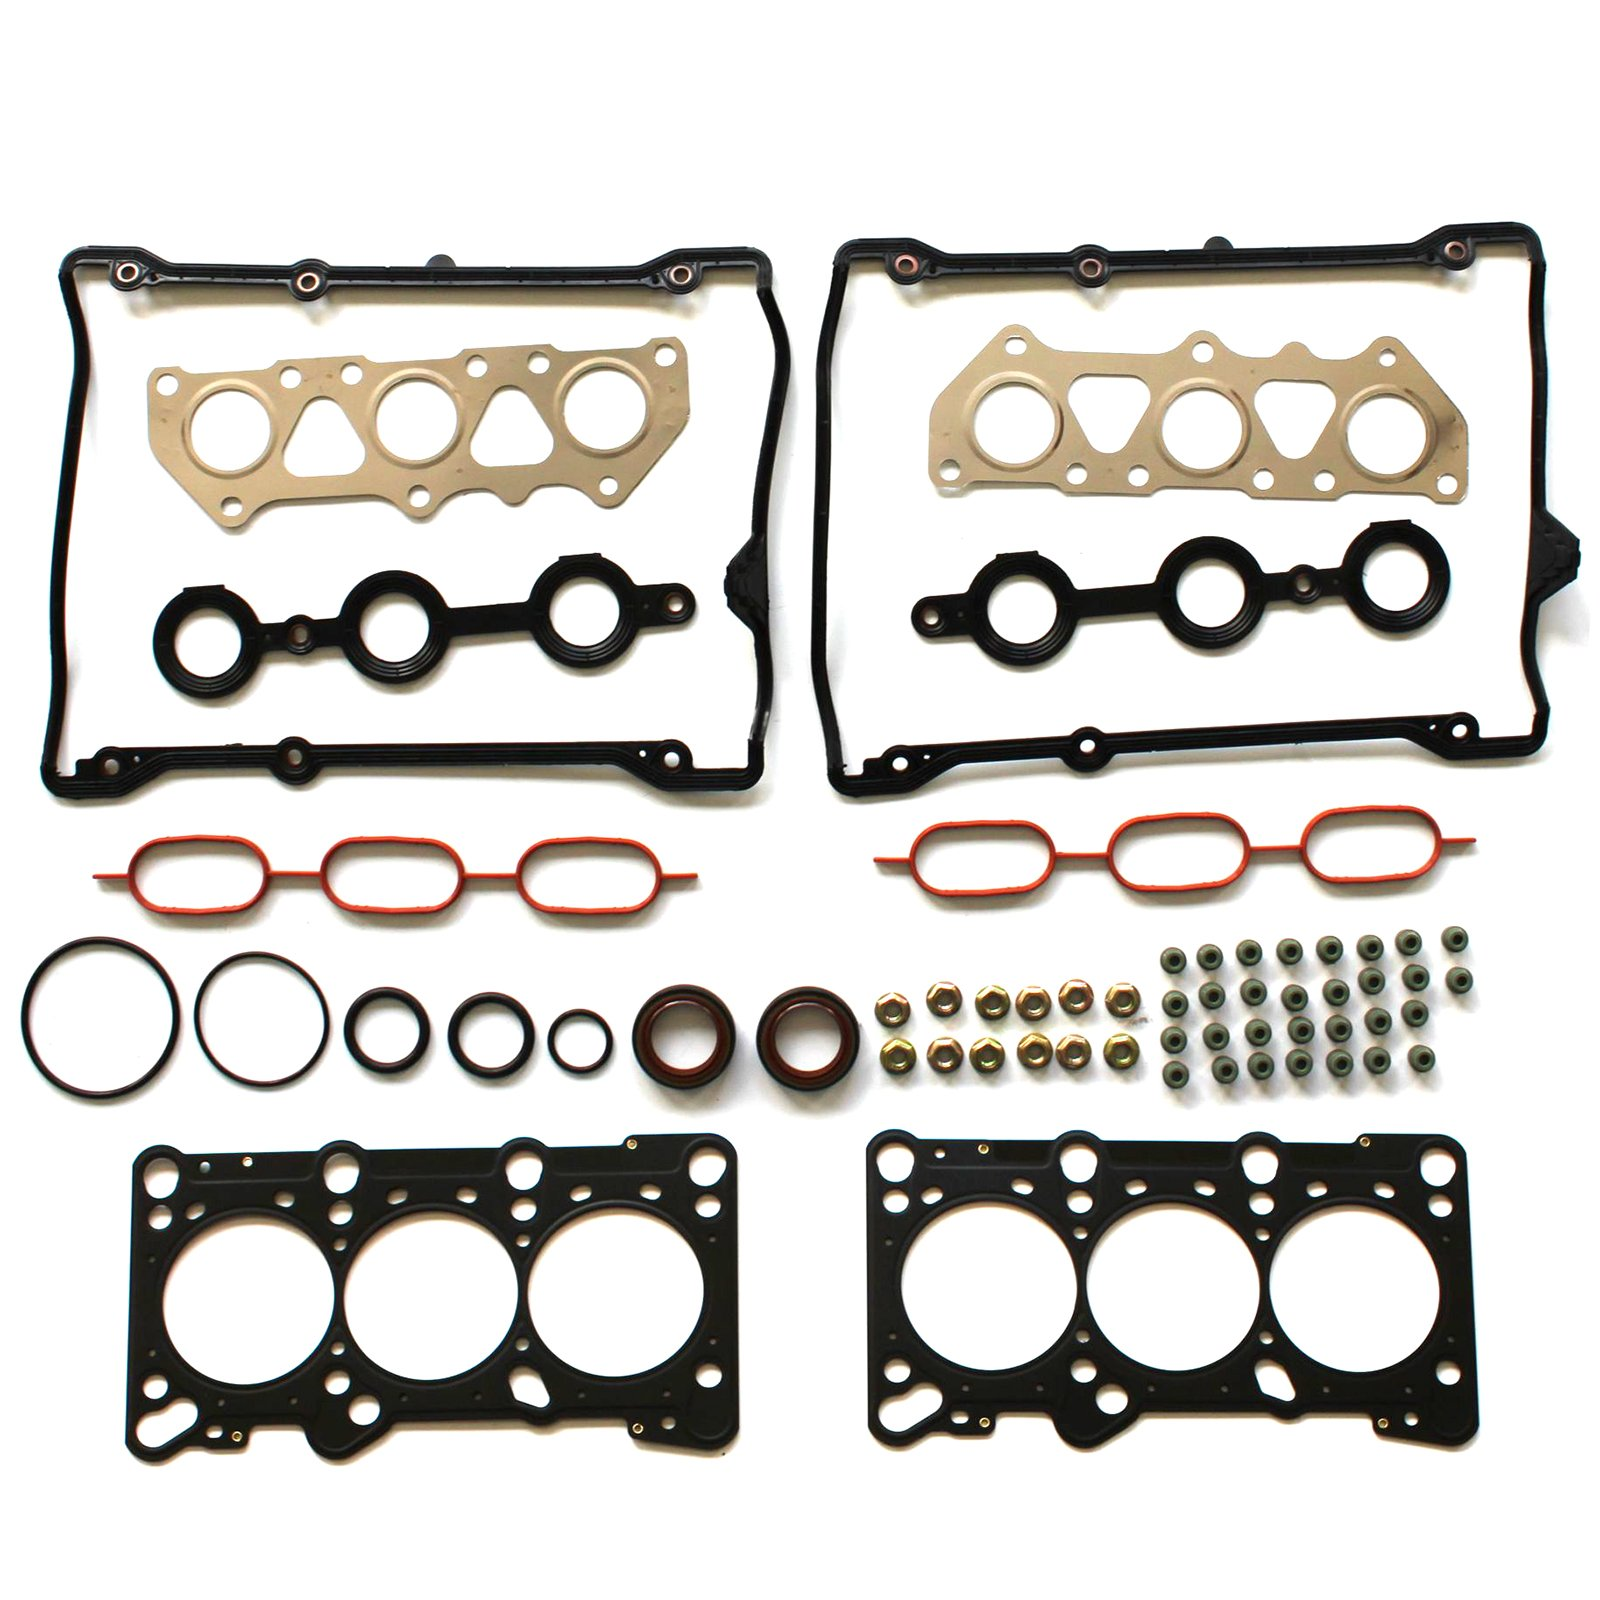 ECCPP Head Gasket Set Automotive Replacement Engine Head Gasket for 1998-2005 Audi A4 A6 Quattro Volkswagen Passat 2.8 DOHC AHA ATQ